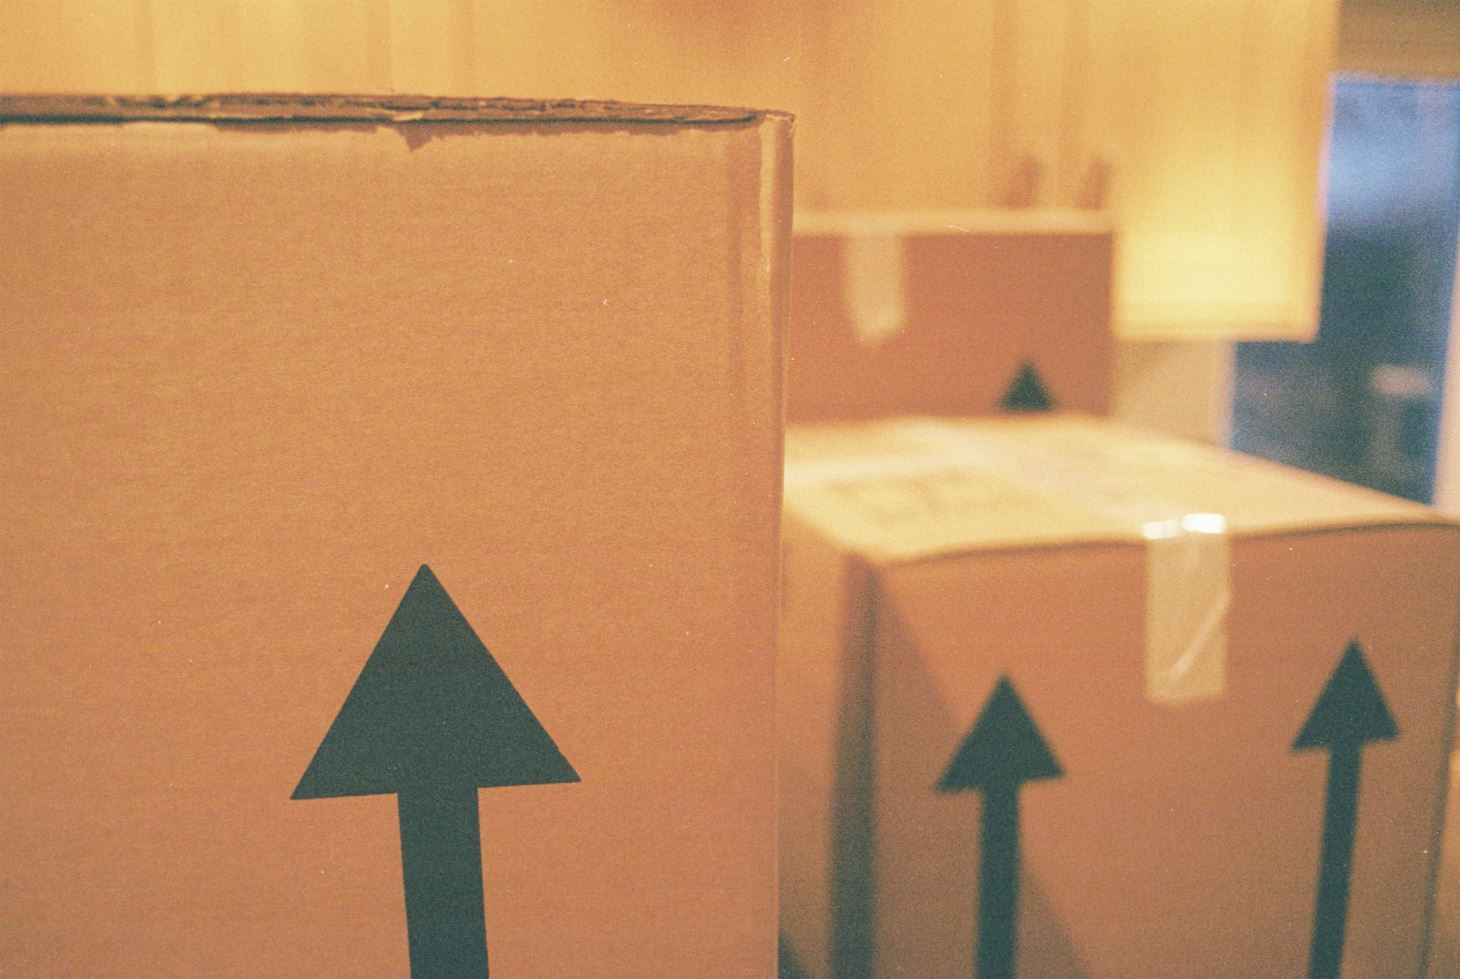 Packing it In 6 Essential Moving Tips to Keep Your Things Safe